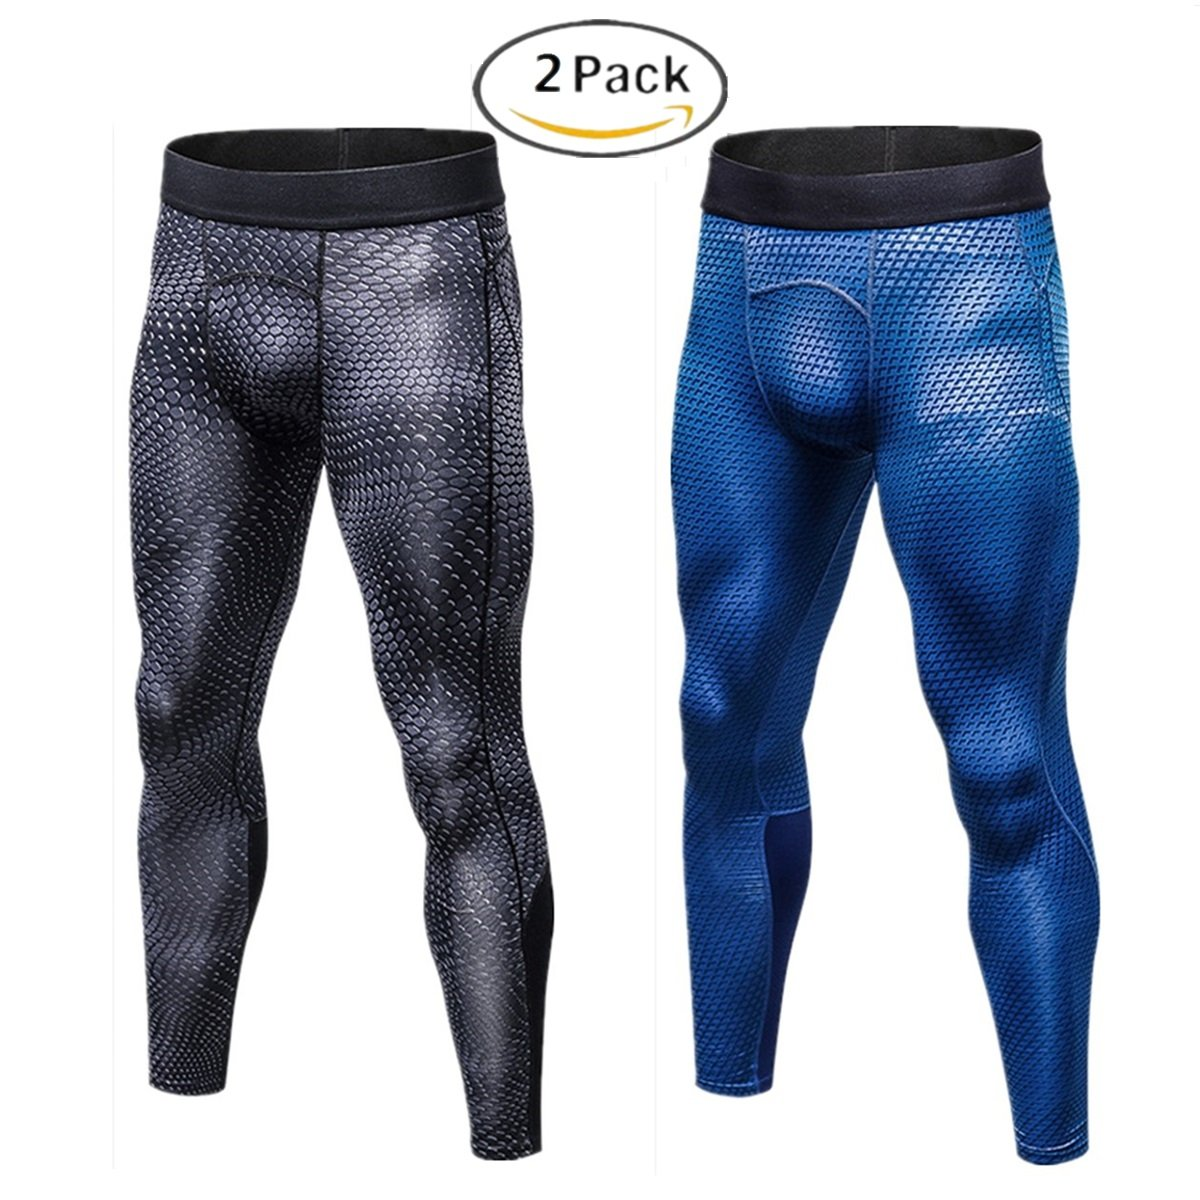 Muscle Killer Men's 2 Pack Compression Pants Cool Dry Sports Tight Leggings (Tag Size XL=US Size M, Snake+Blue)